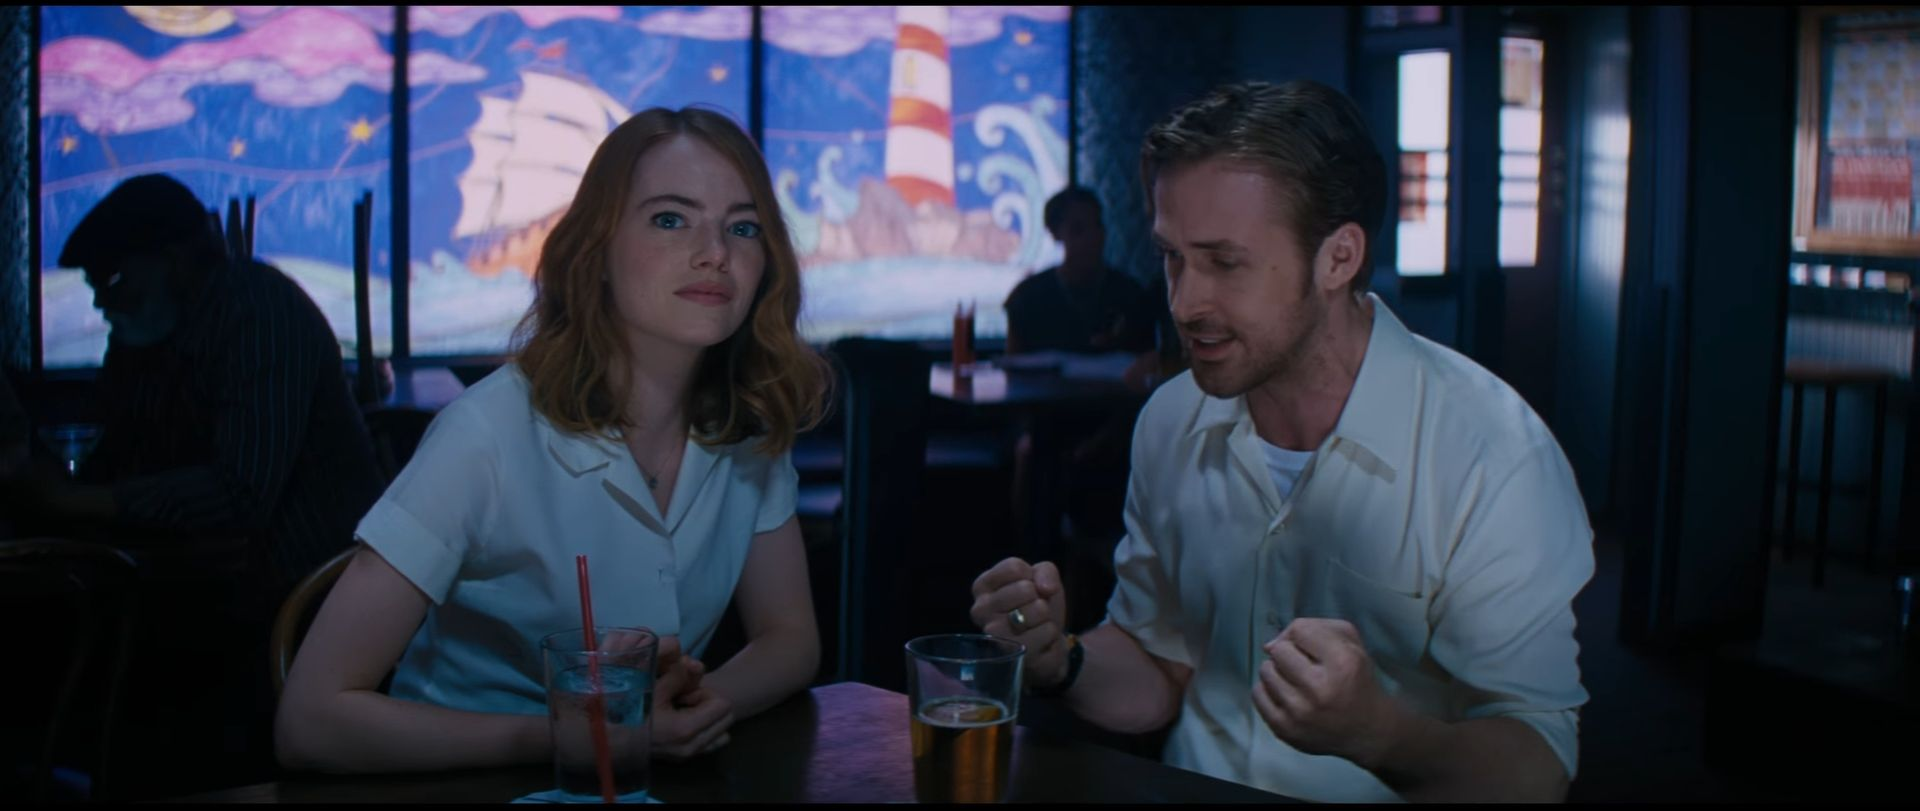 VIDEO: NAGRADE BAFTA 'La La Land' zaradio čak 11 nominacija